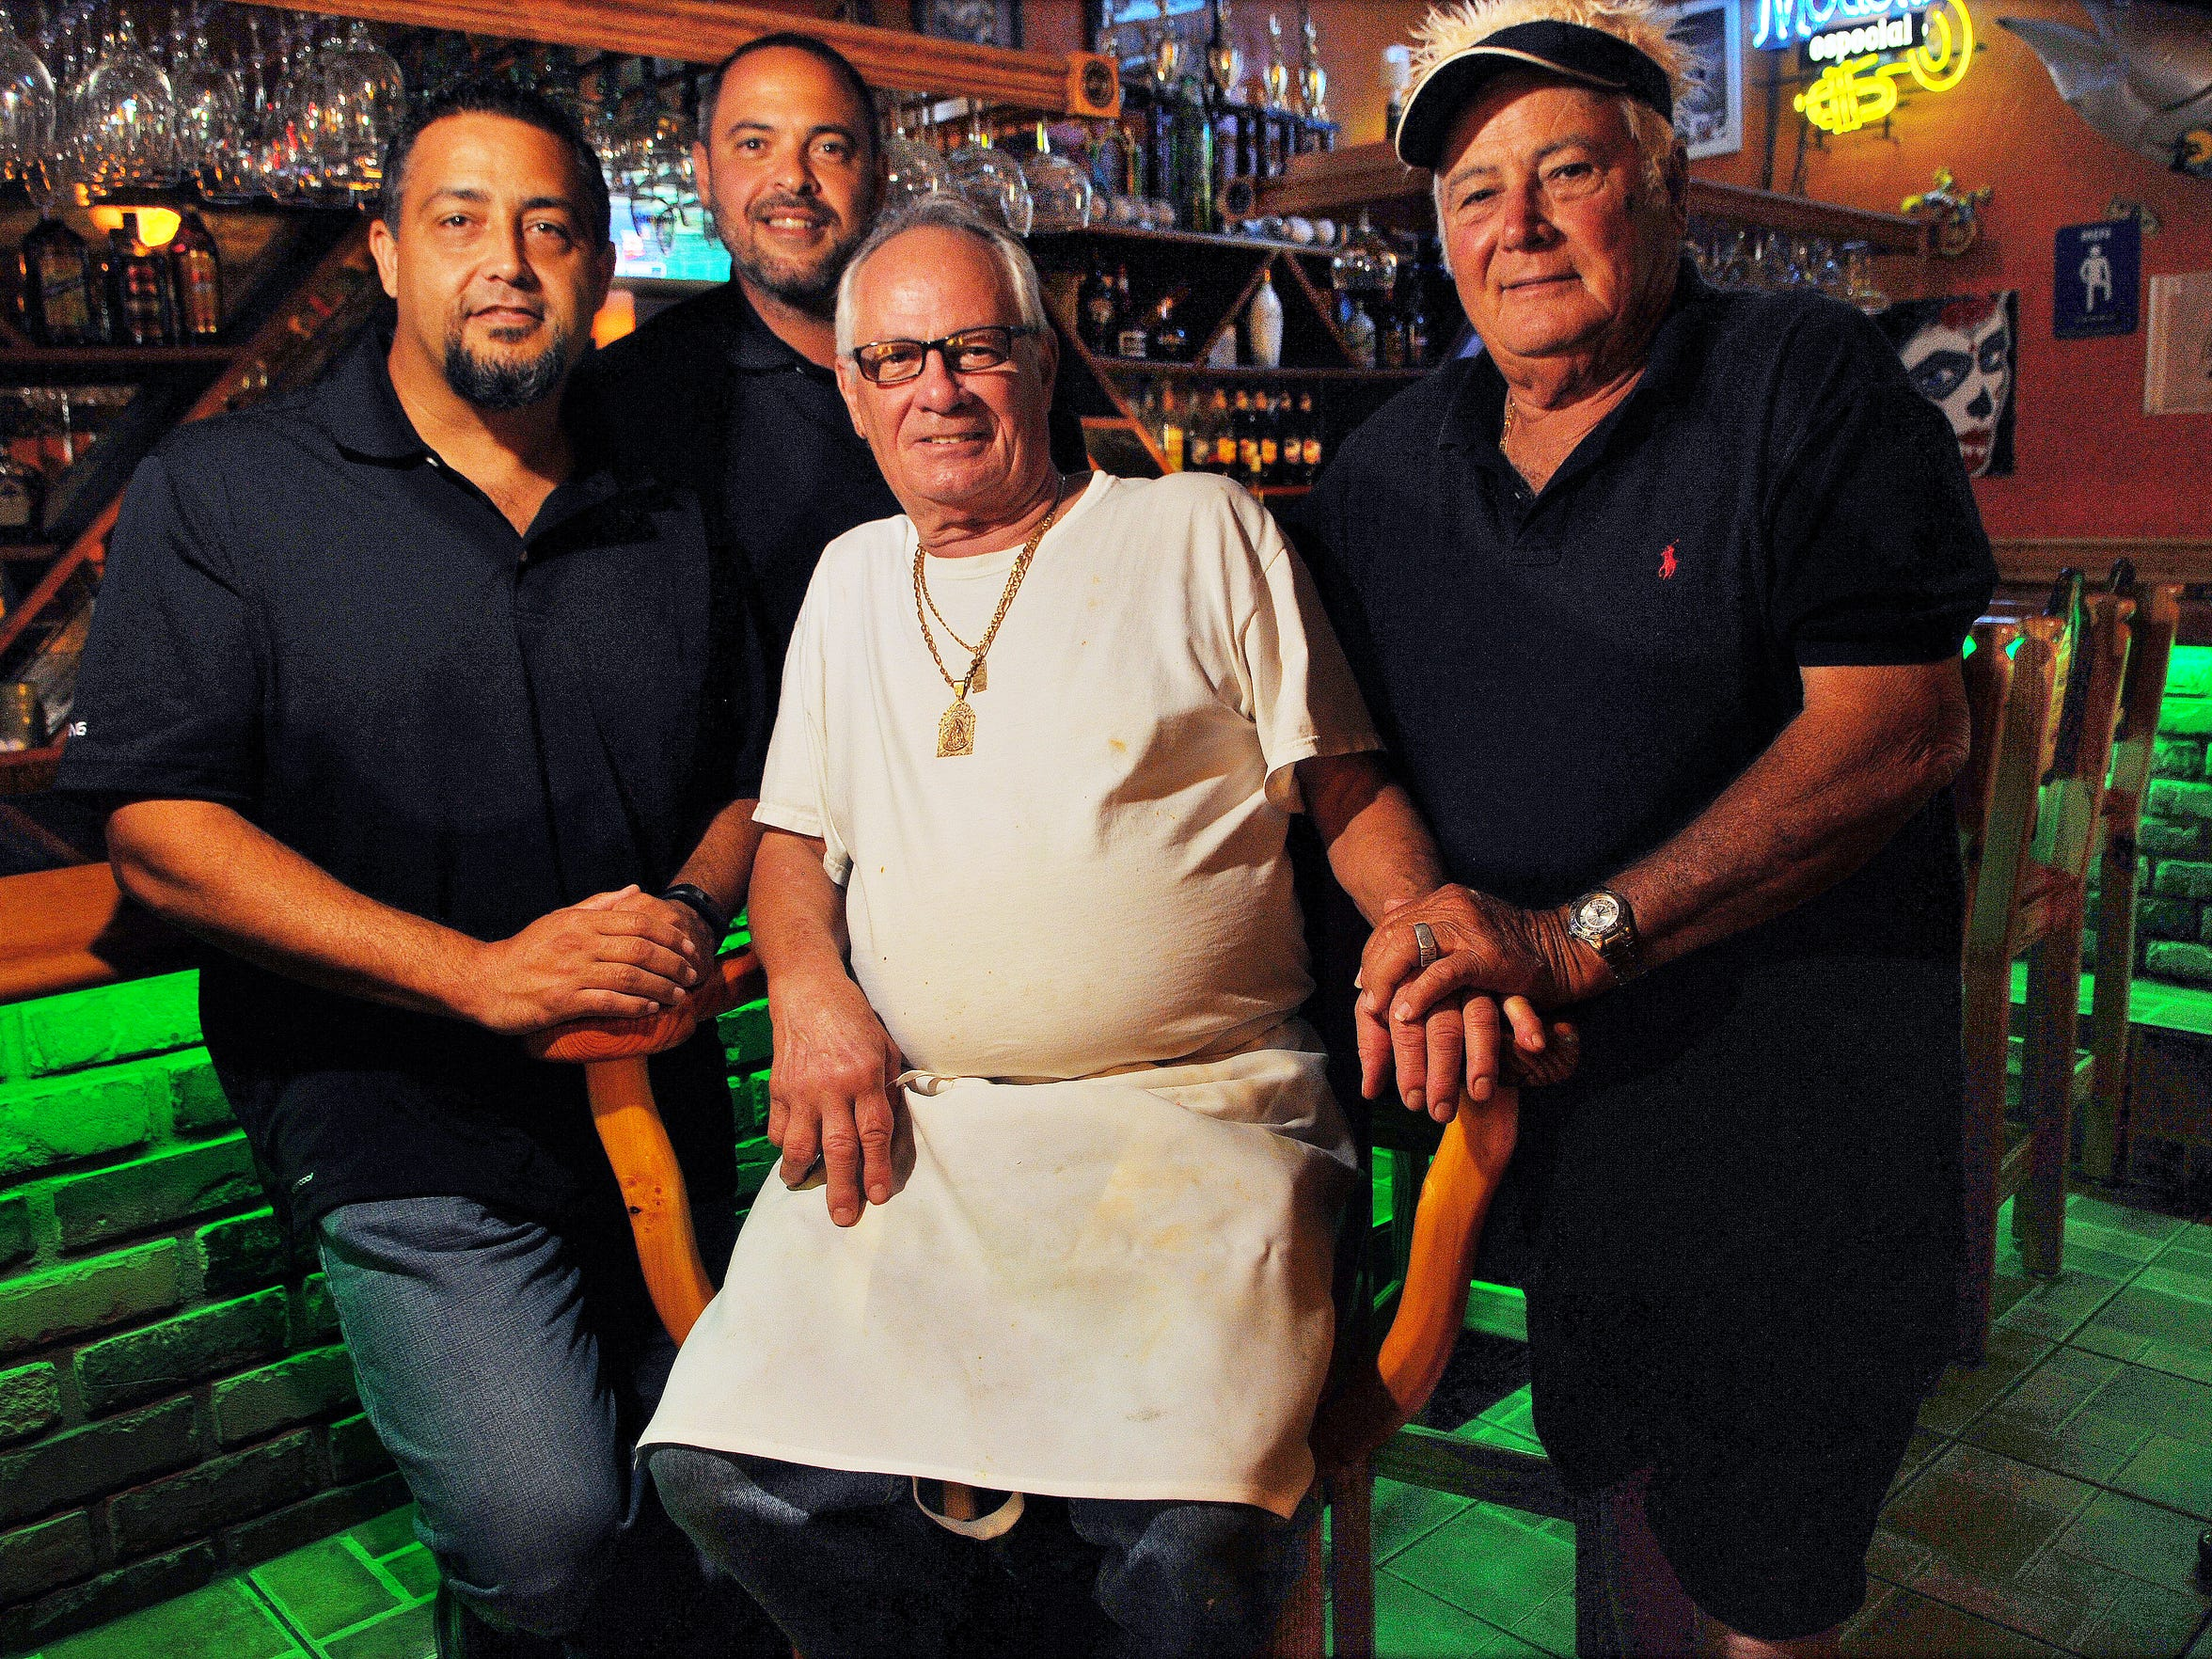 Raul, Rudy Rodolfo and Raul Barrial at El Charro in Cocoa.